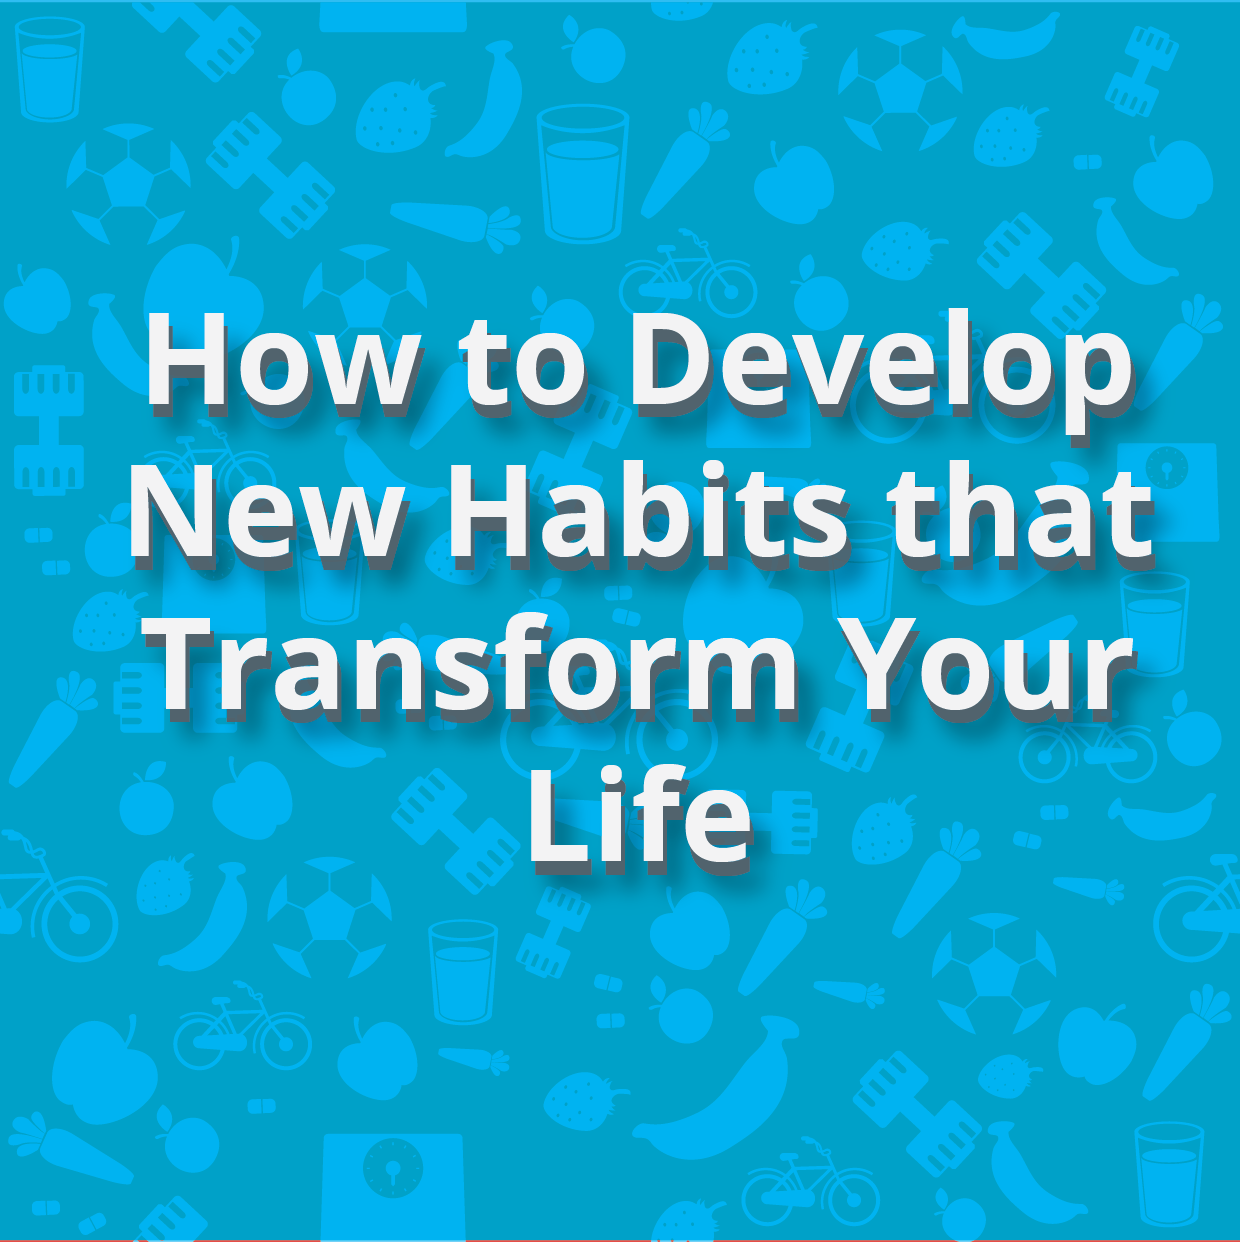 How to Develop New Habits that Transform Your Life